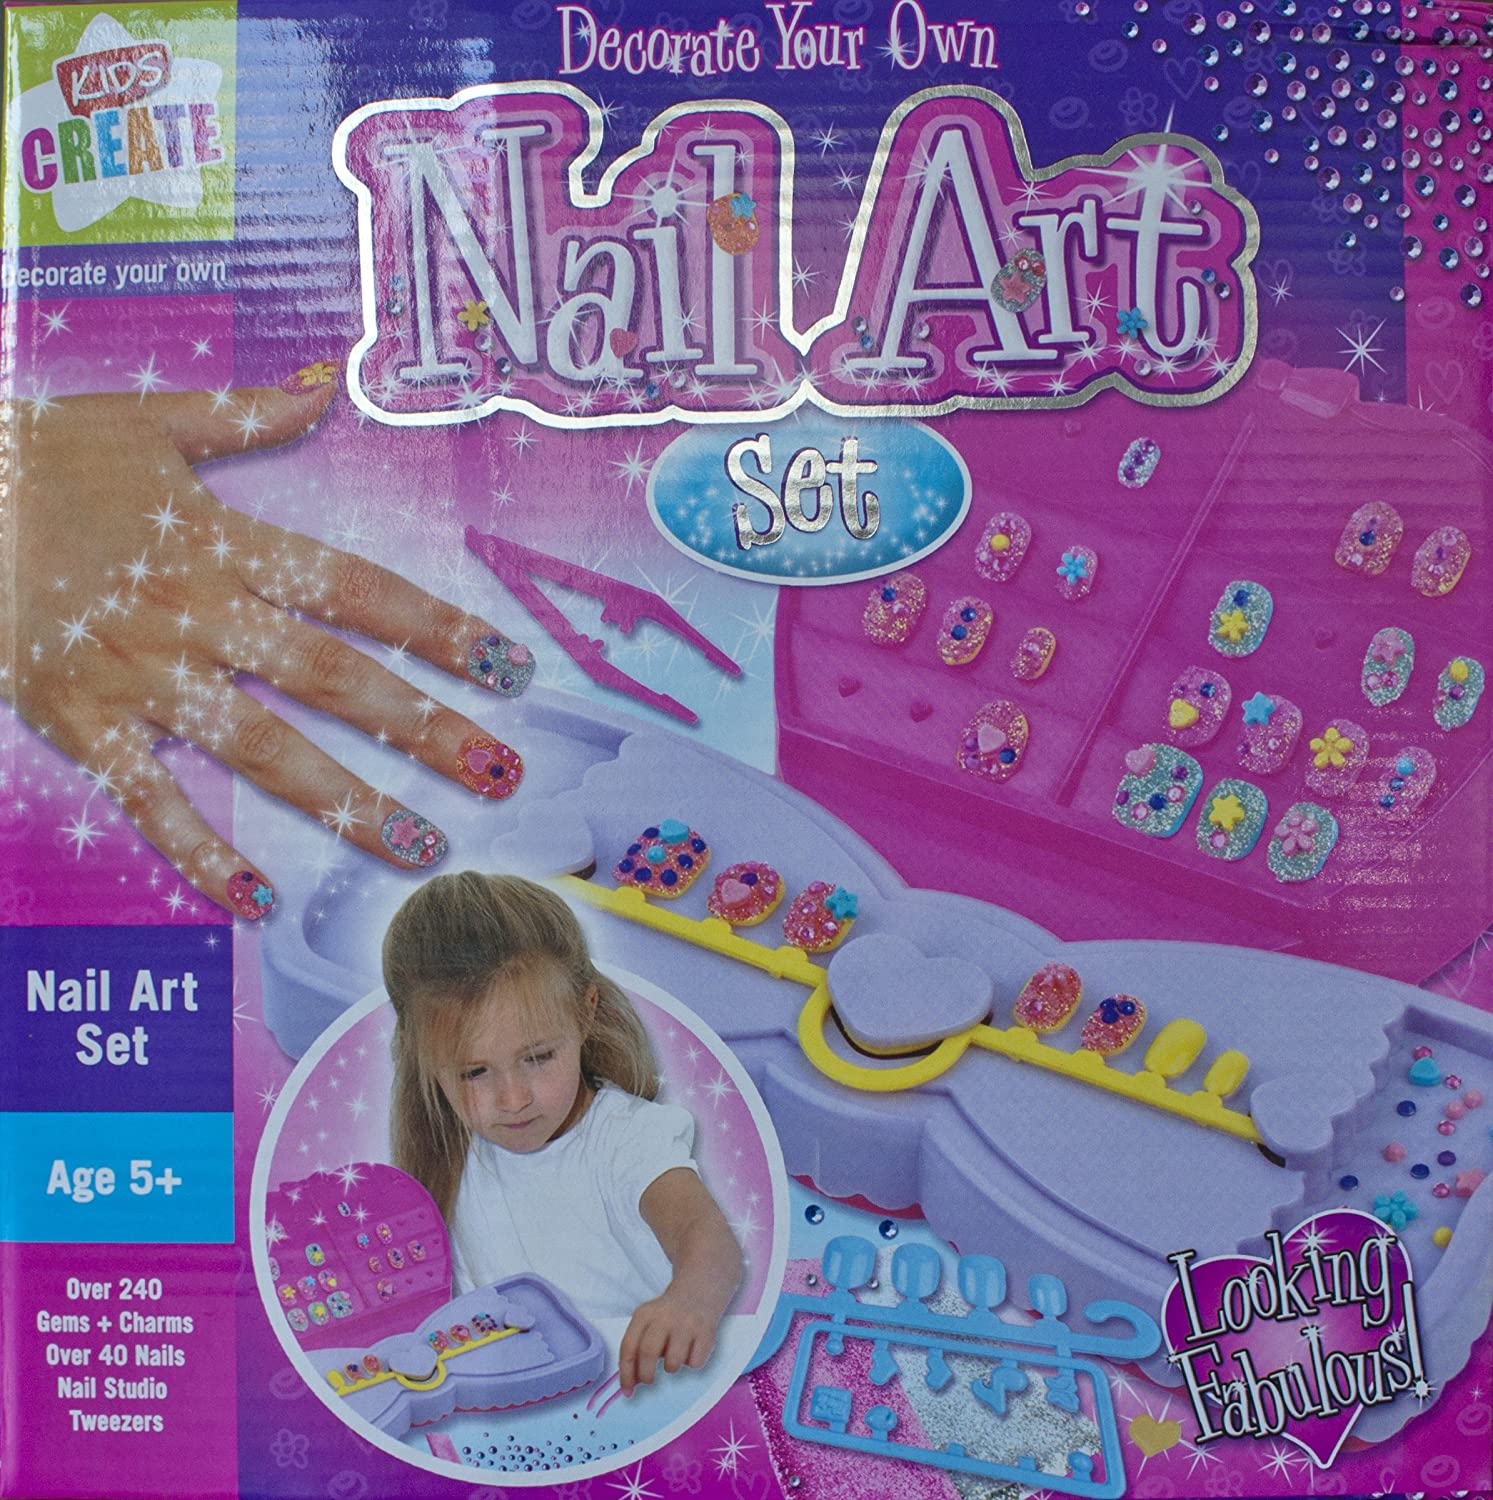 Decorate Your Own - Nail Art Set - Kids Create: Amazon.co.uk: Toys ...